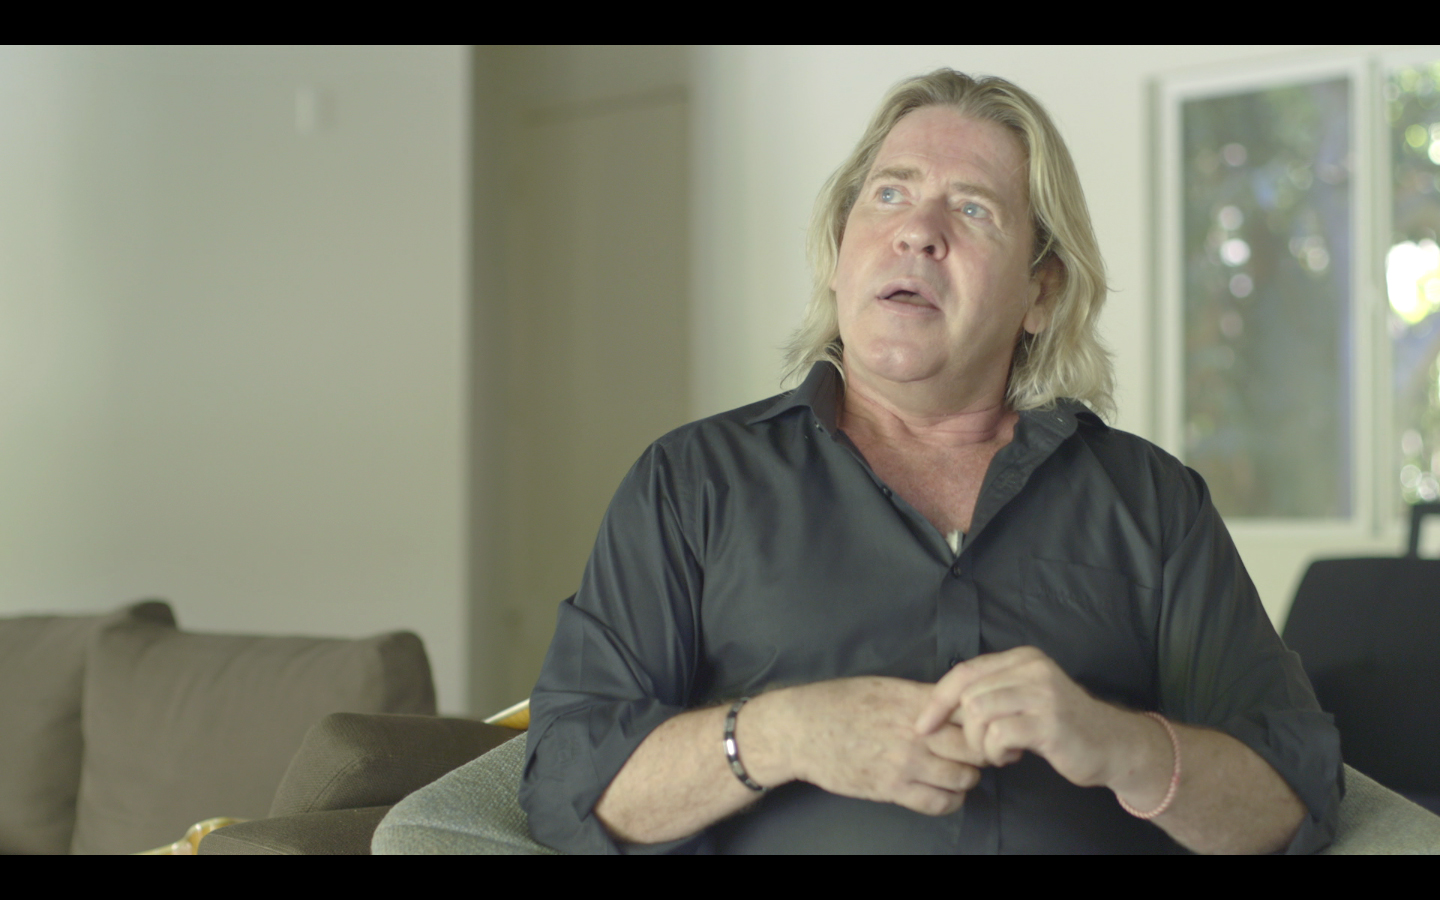 Steve Lillywhite, producer